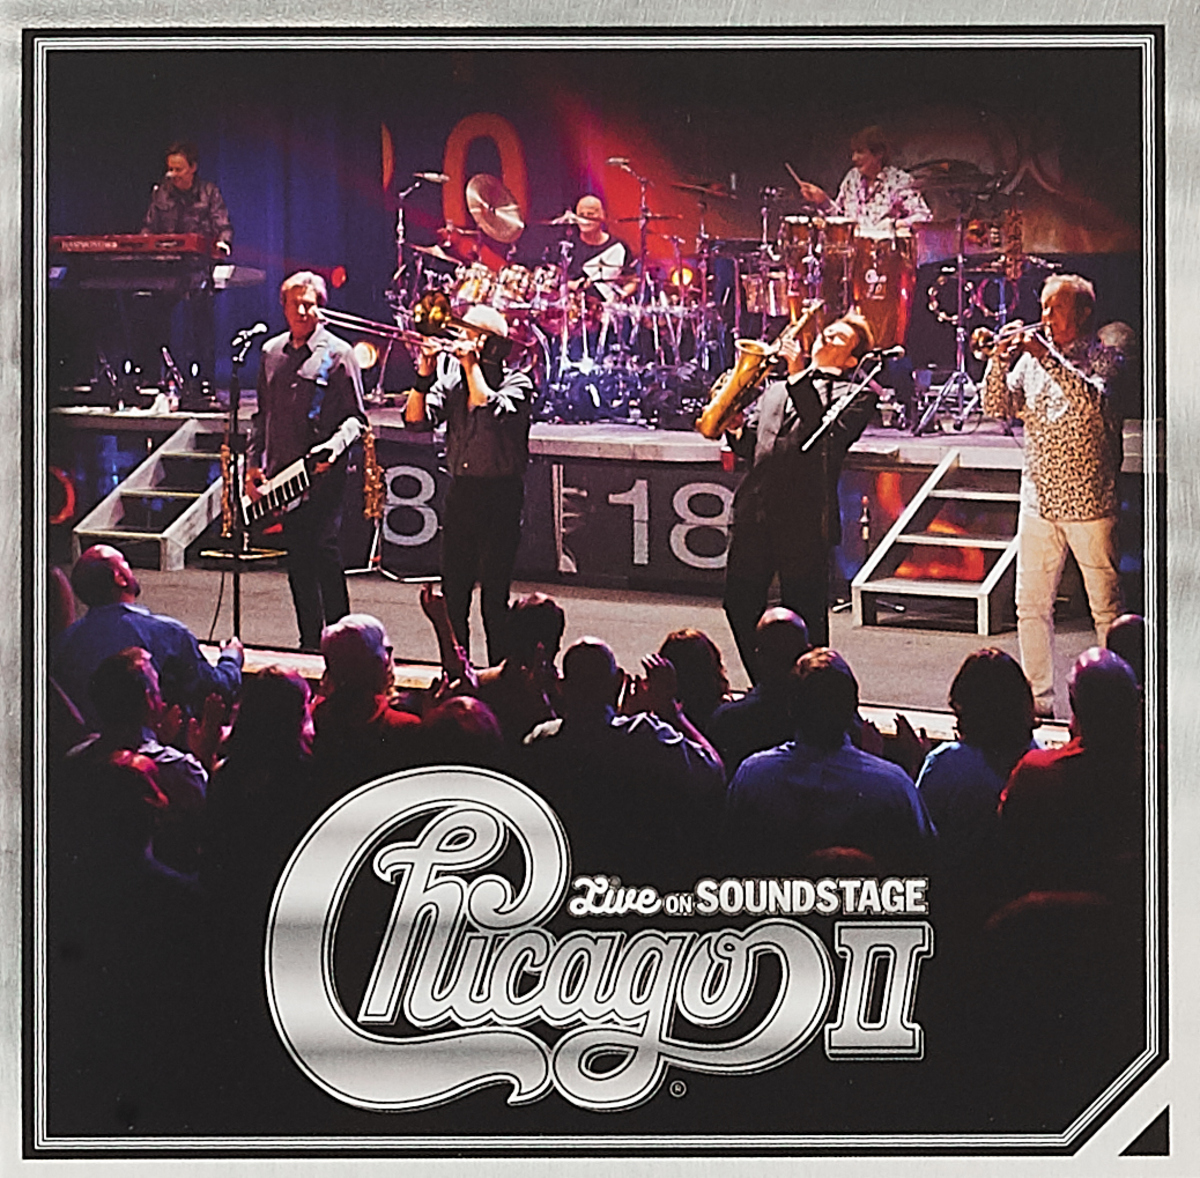 Chicago Chicago. Chicago II - Live On Soundstage chicago chicago 13